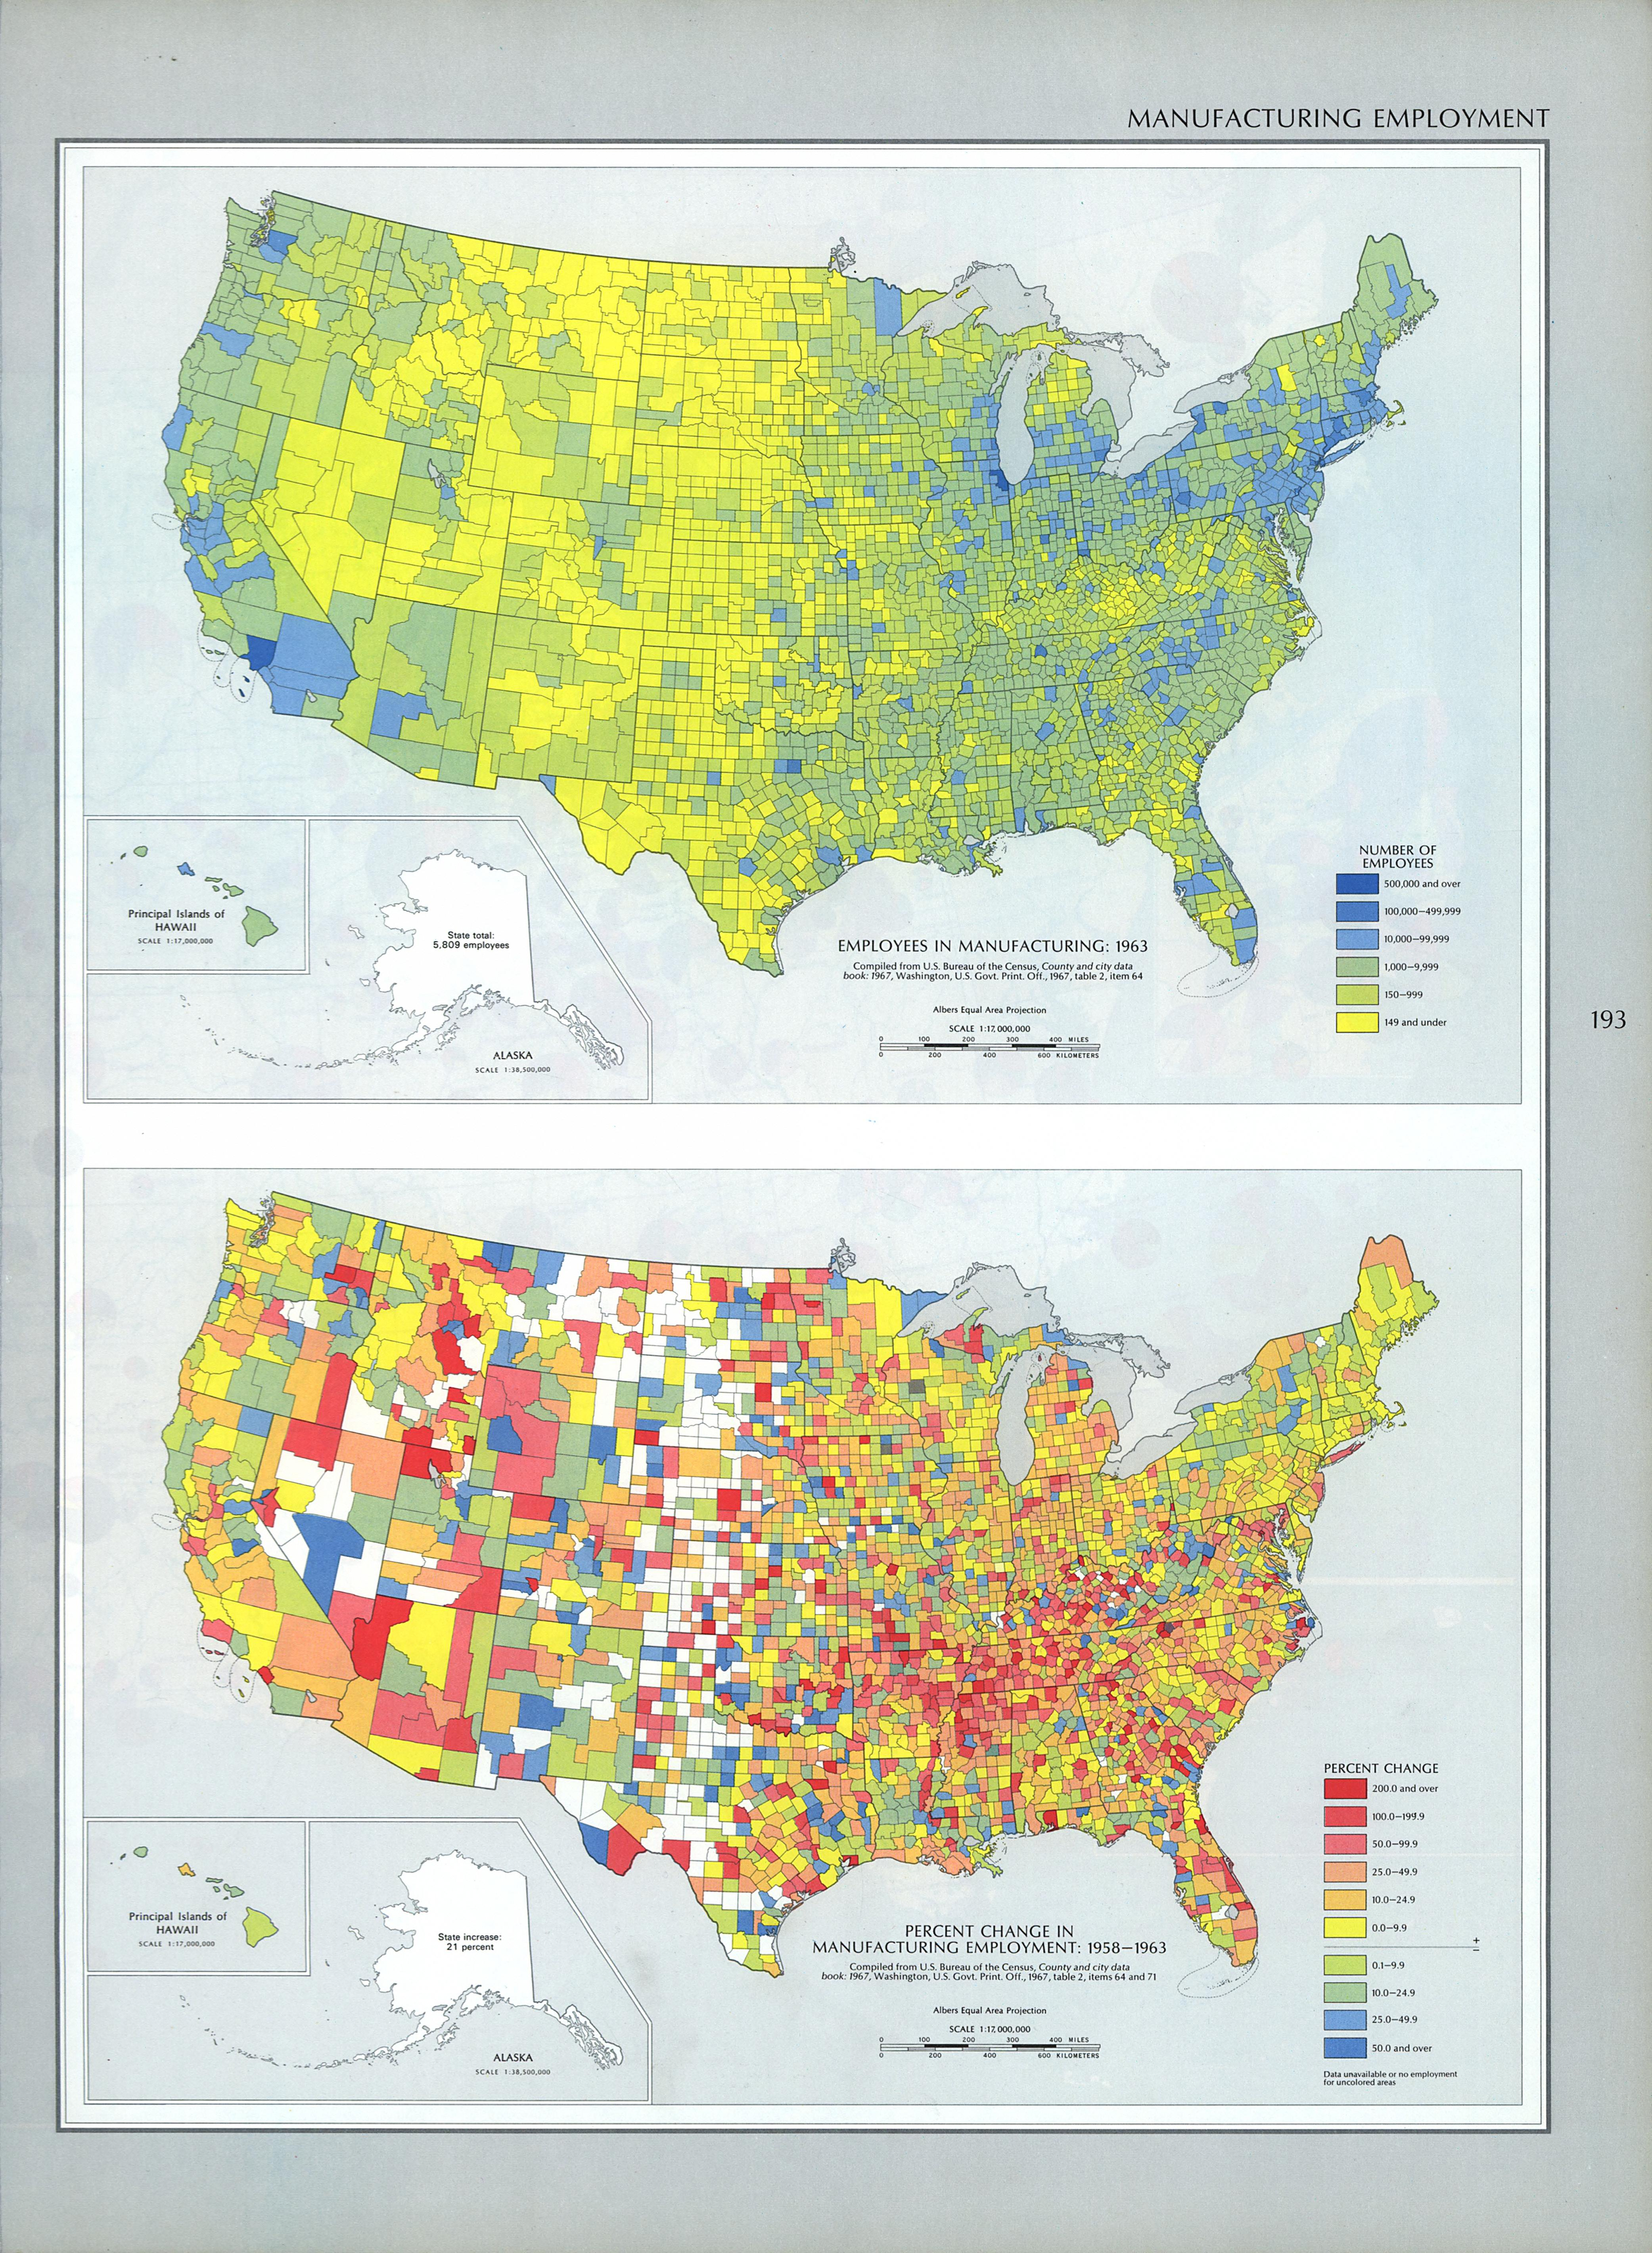 Map of Employees in Manufacturing, United States